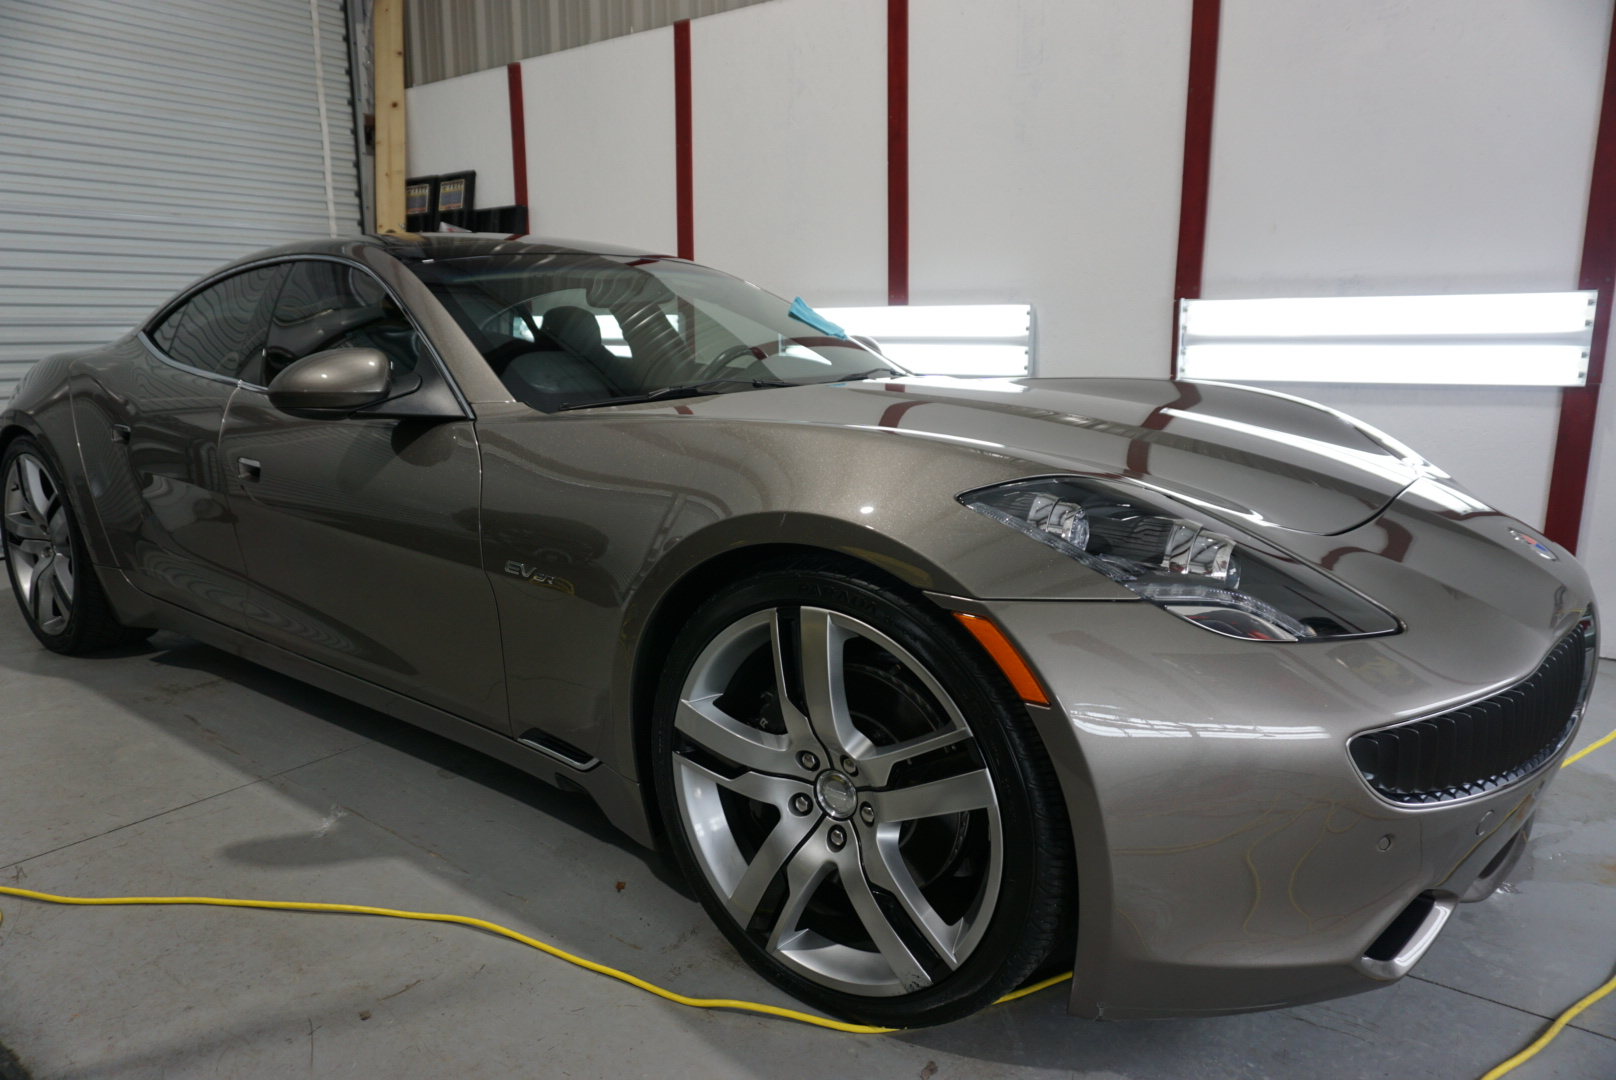 Ceramic Coating of a 2016 Fisker Karma